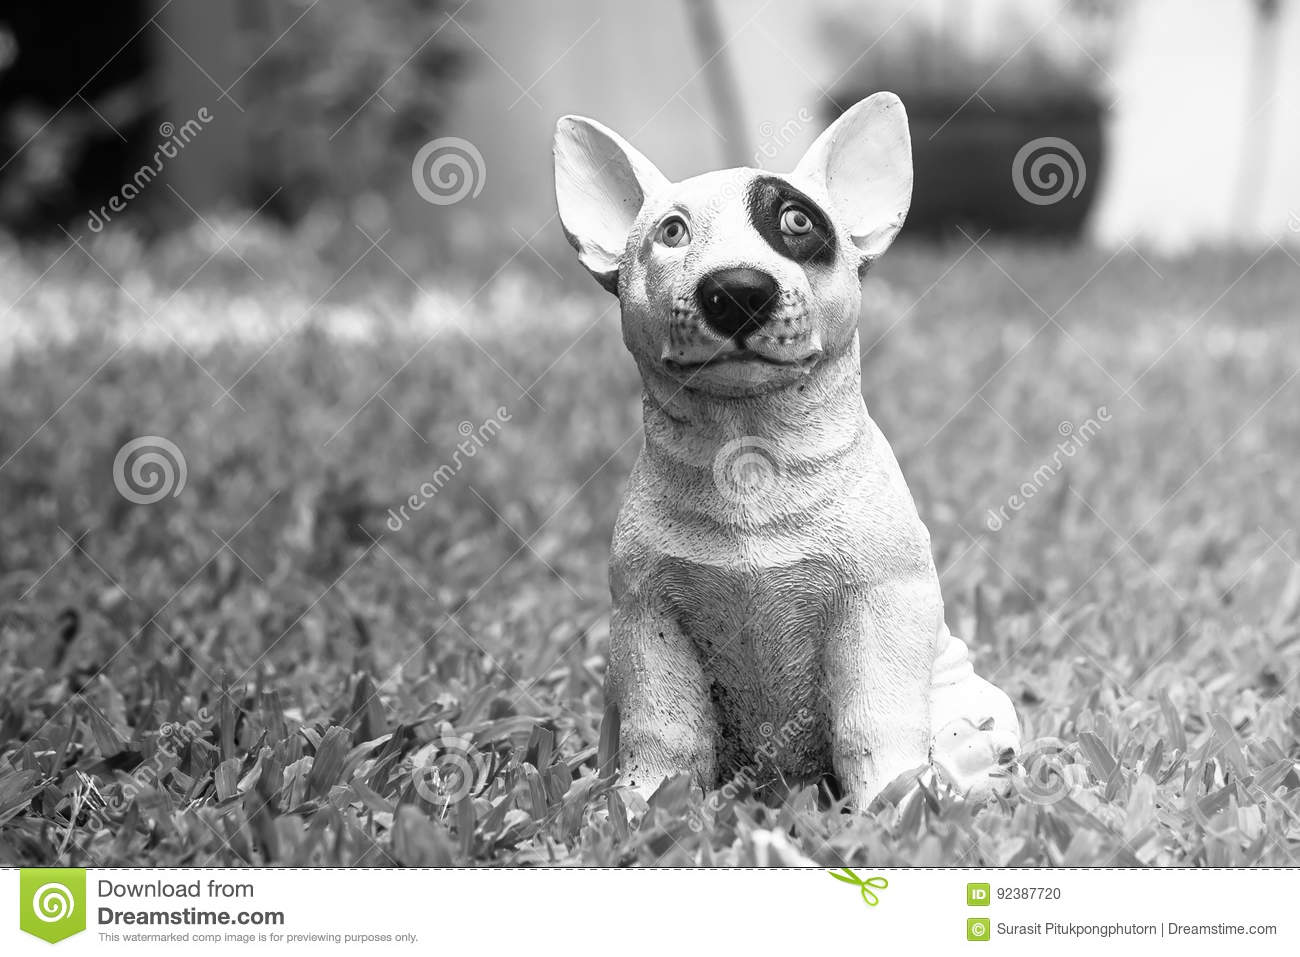 Cute white dog standing on green grass in garden for decoration